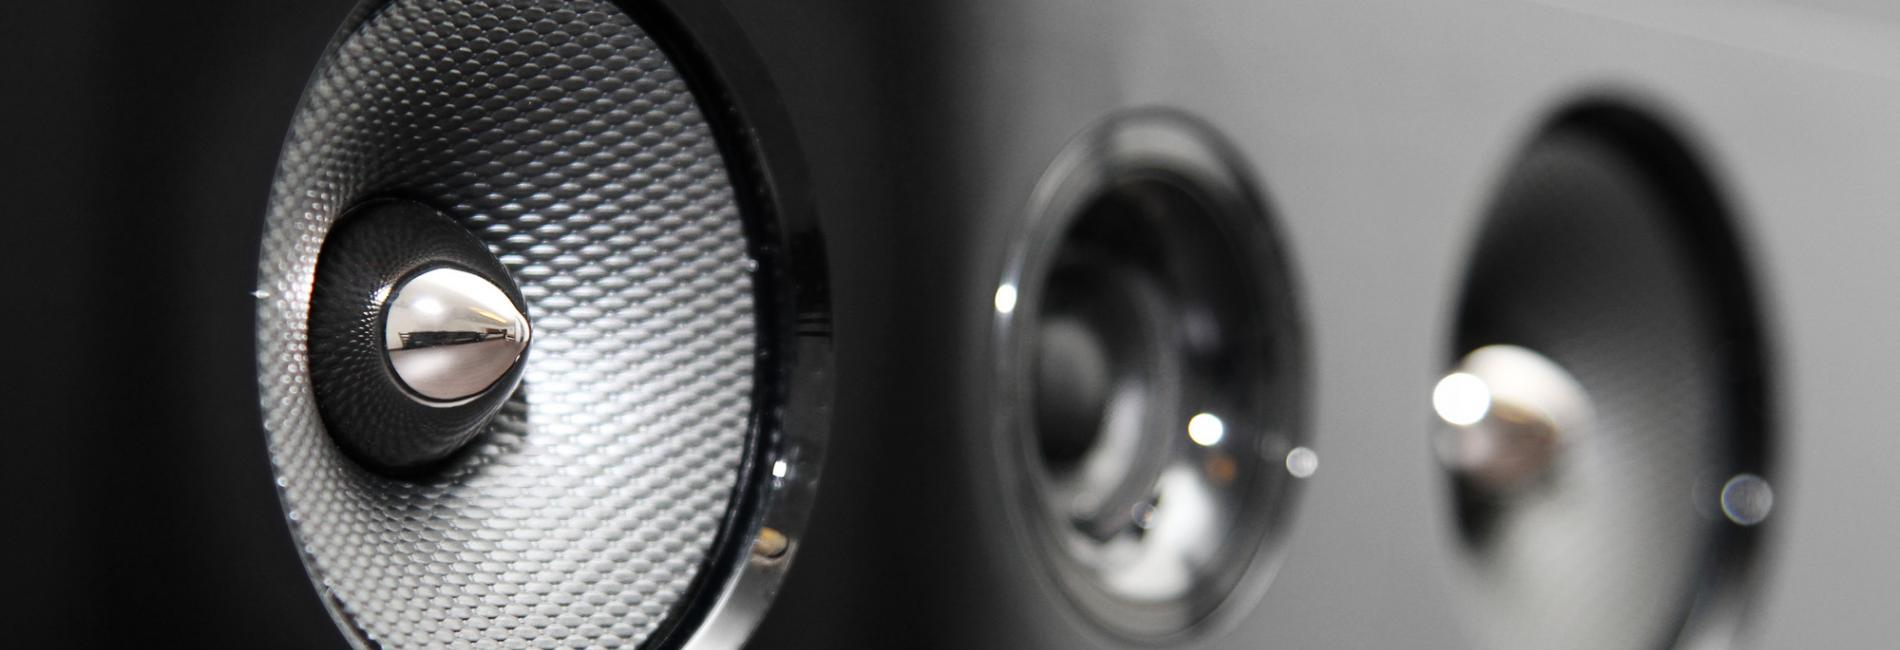 closeup of soundbar speaker